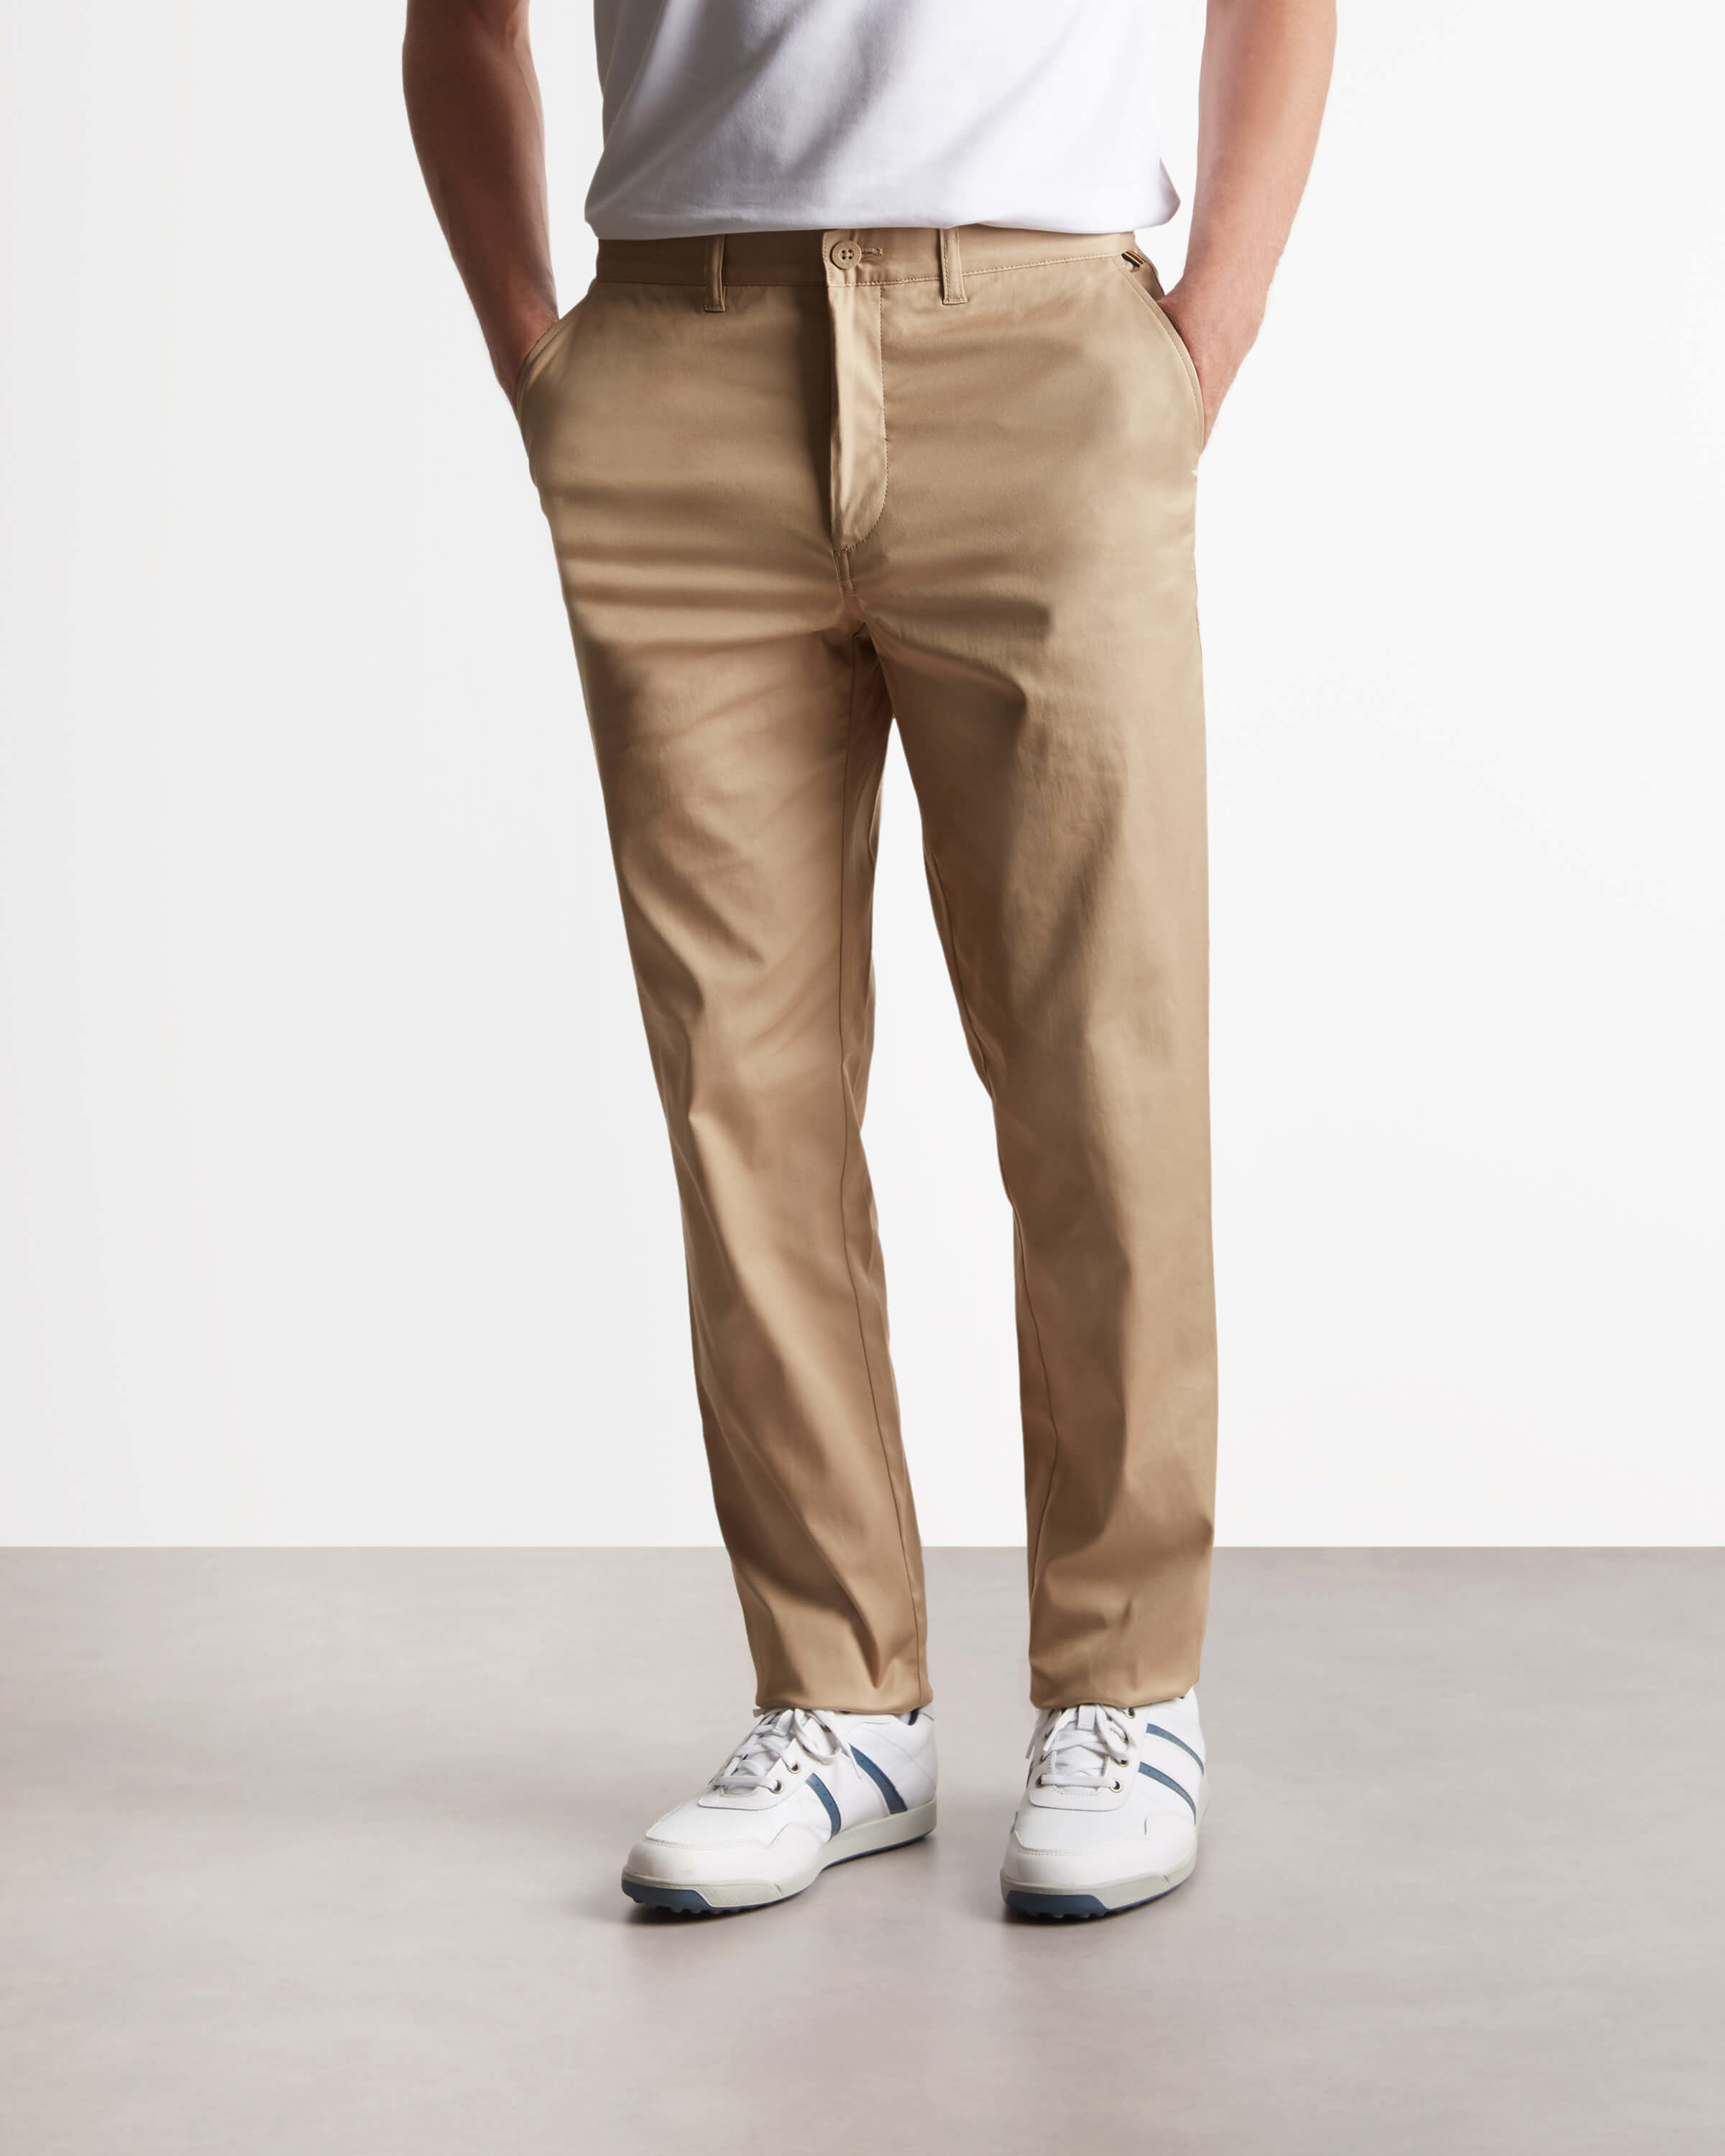 Lyle and Scott Dark Sand Fidra Golf Slim Fit Chino